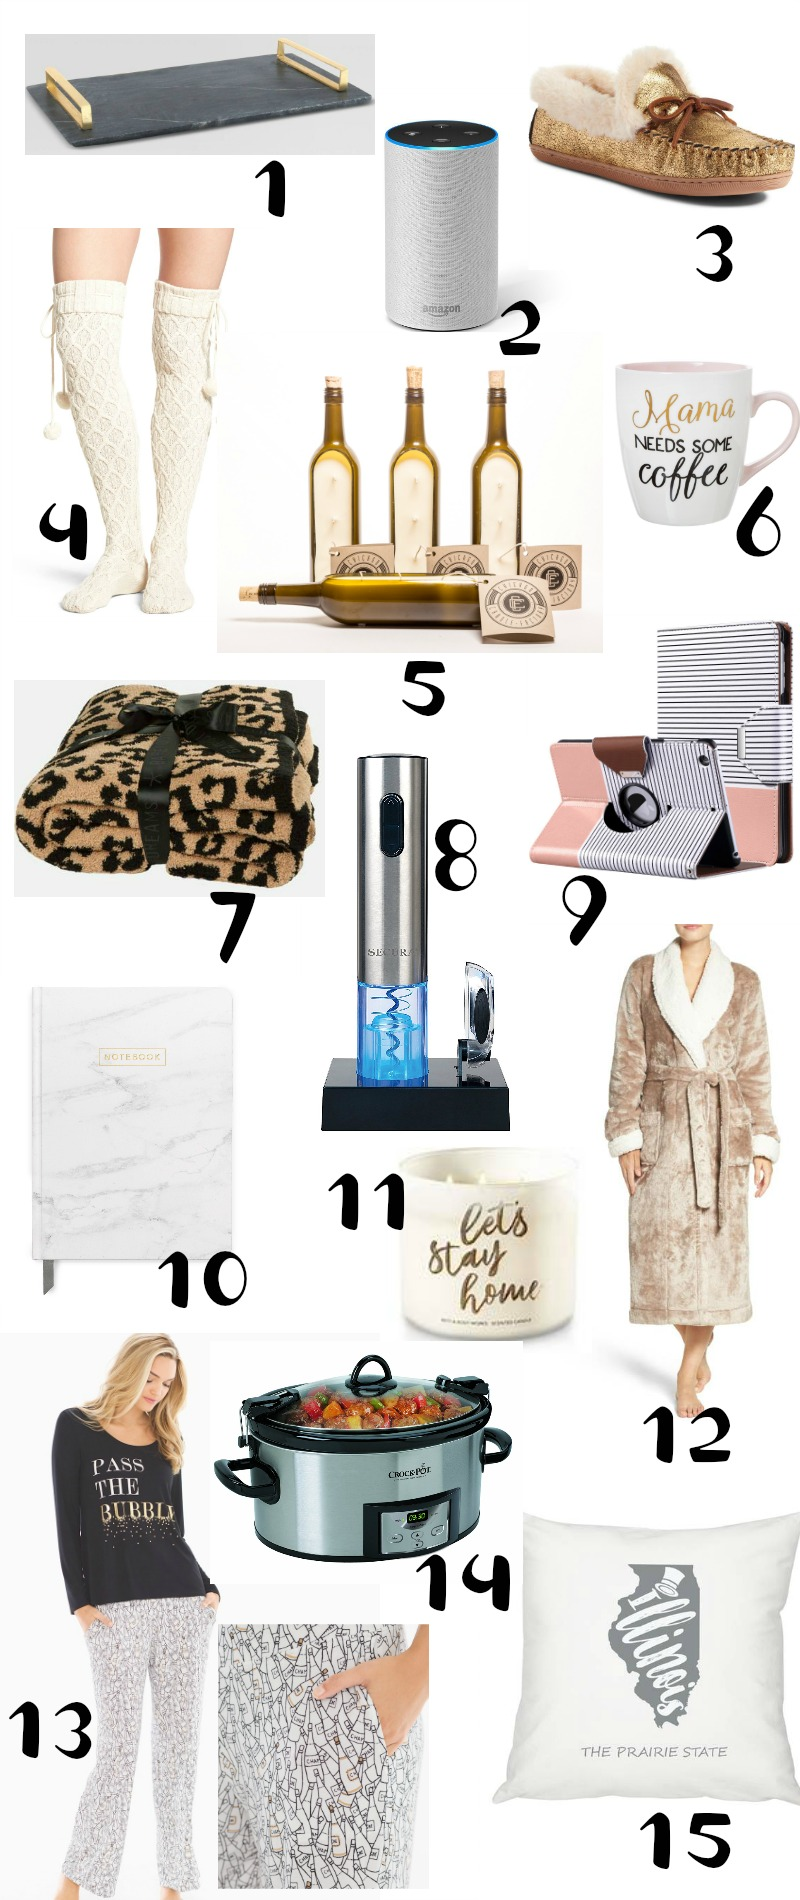 The Ultimate Holiday Gift Guide for the Home-Girl - things that will keep her feeling cute, cozy and comfortable!